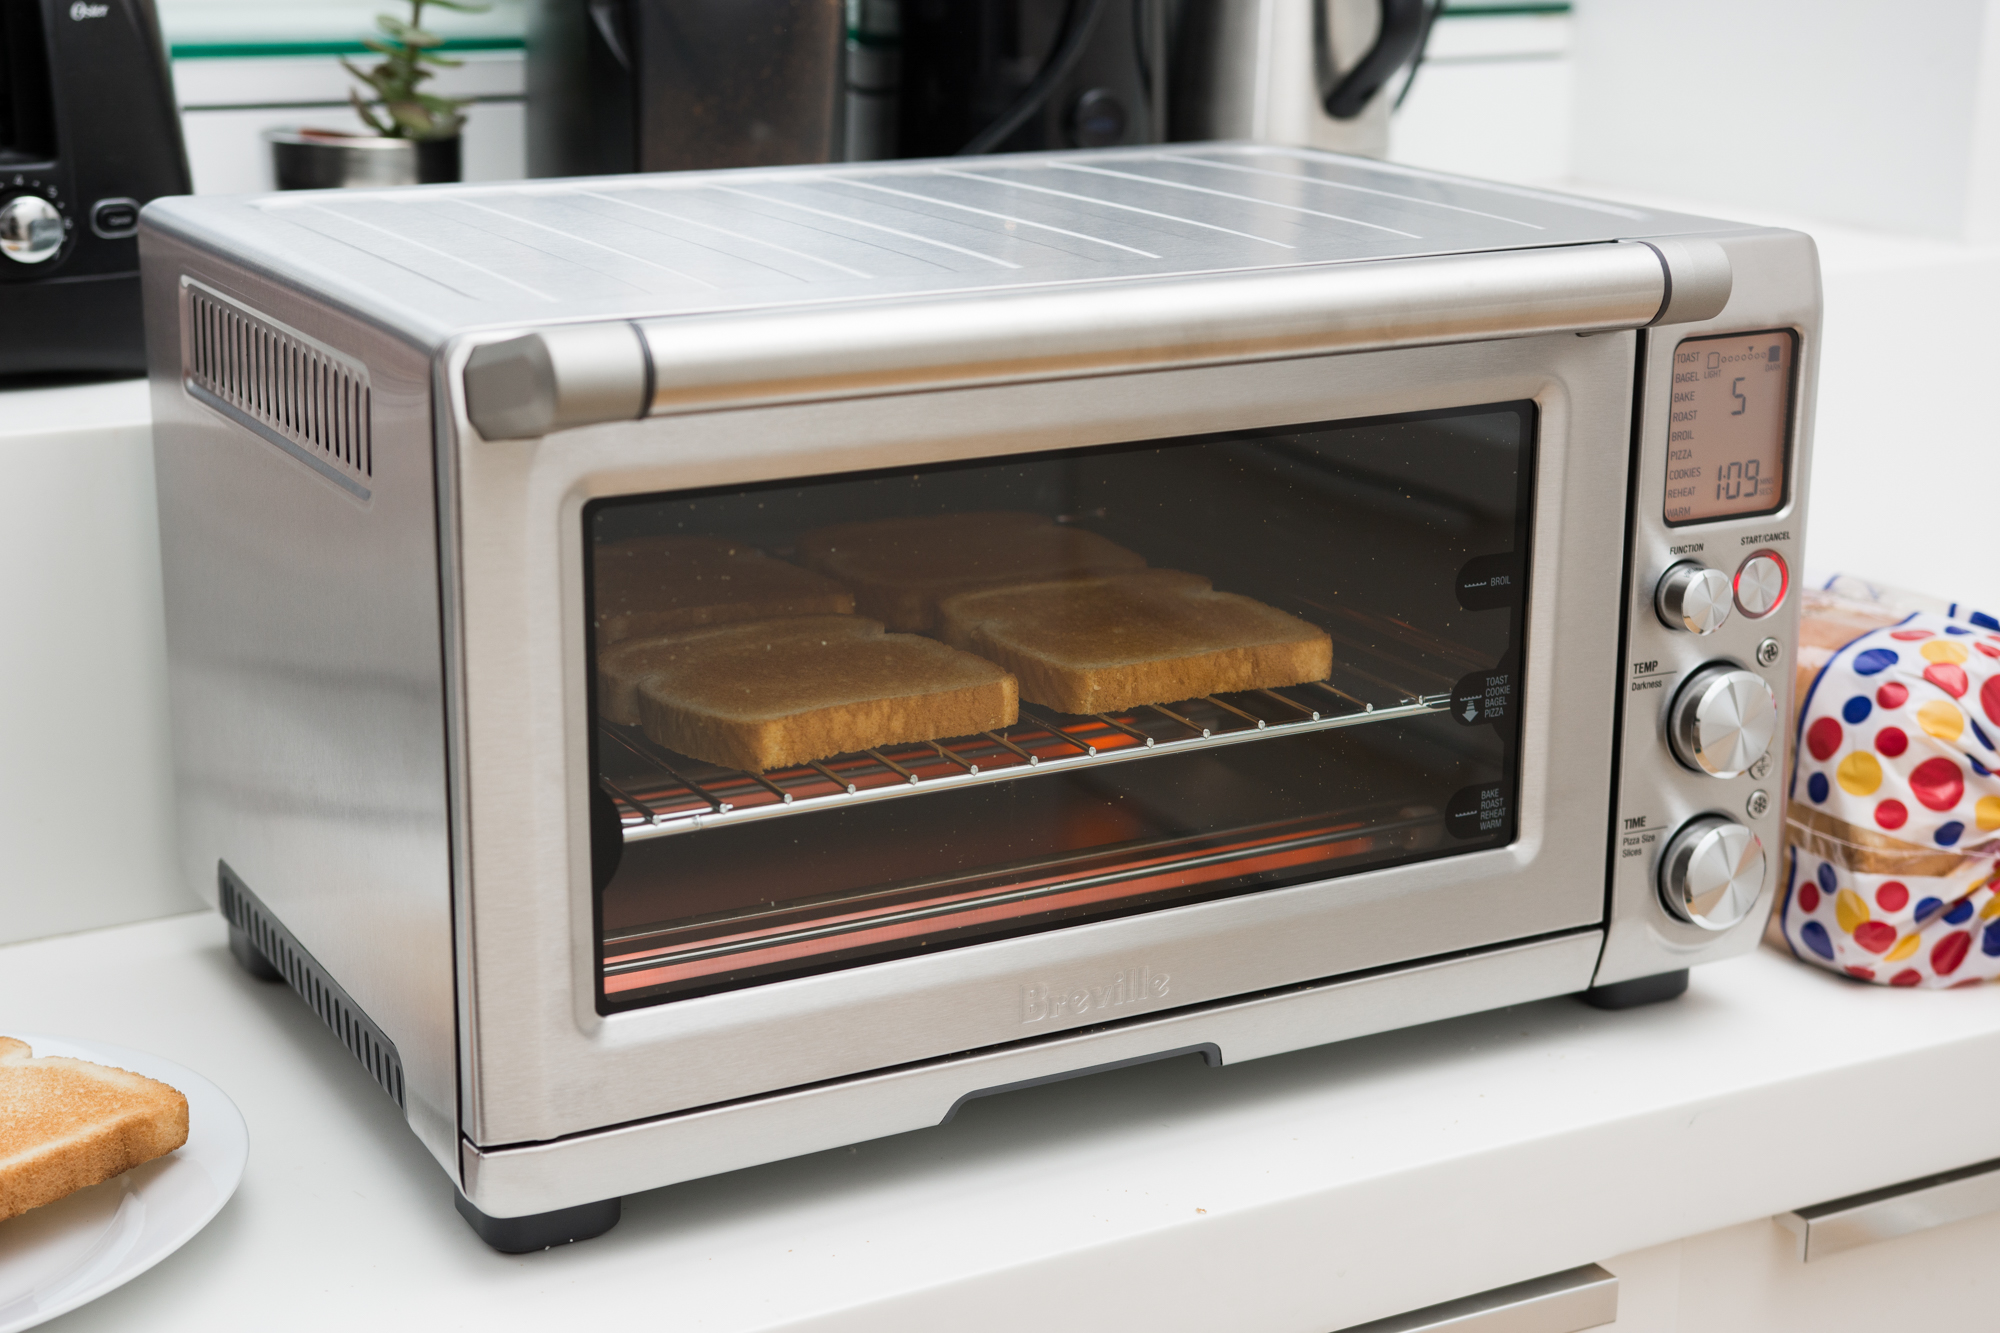 cu p stainless oven steel site livenza best delonghi ft toaster ovens sd silver buy